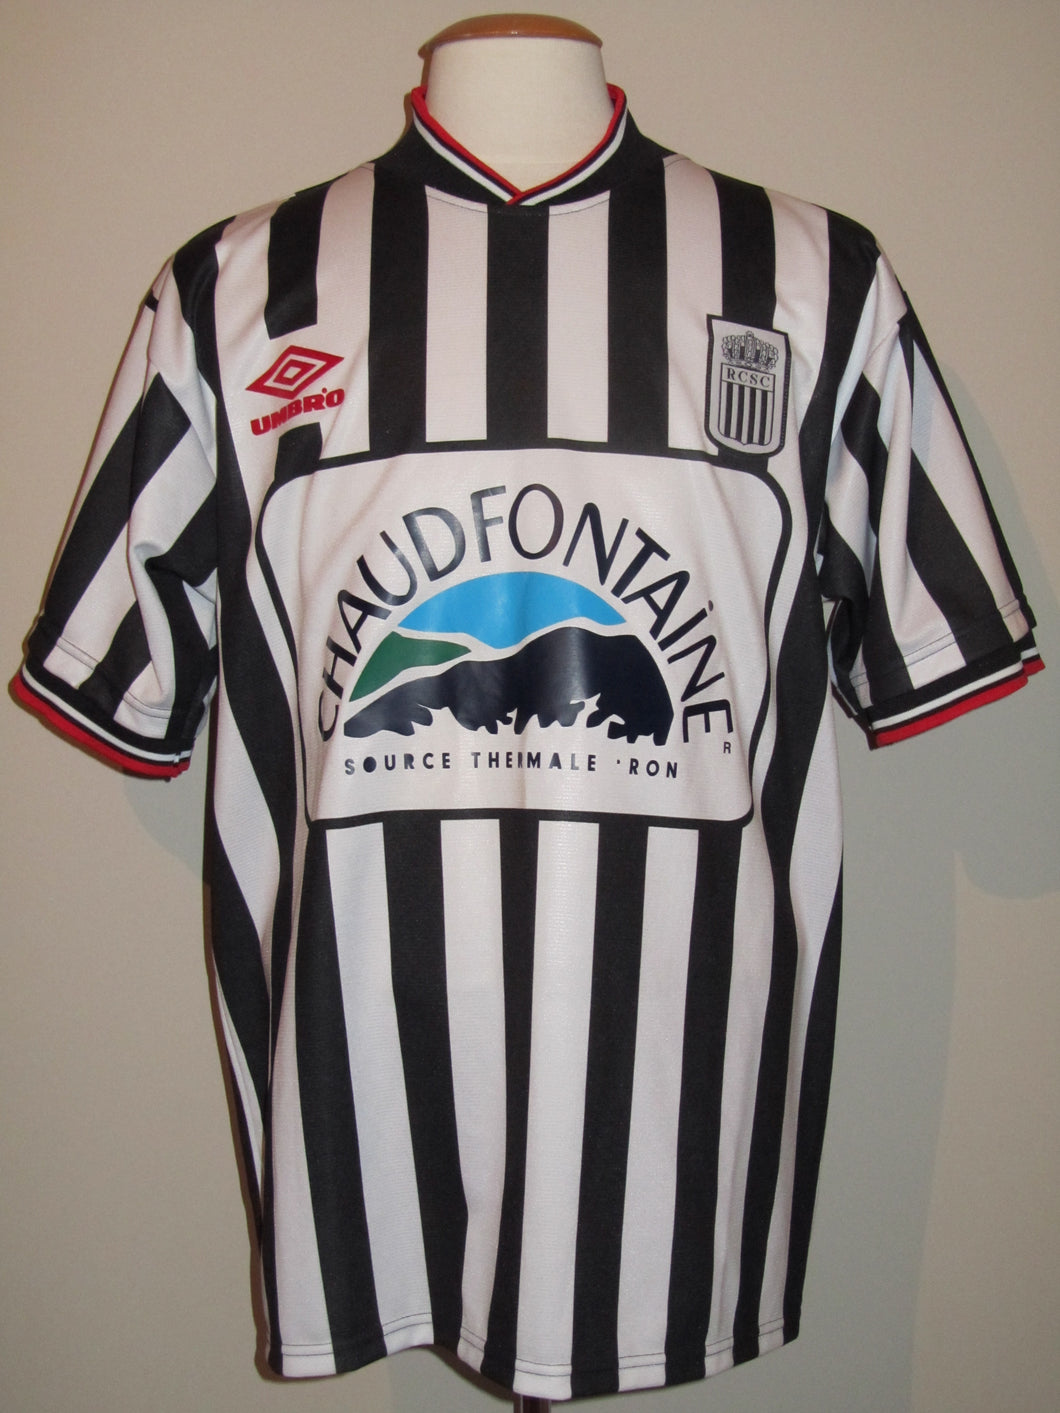 RSC Charleroi 2000-01 Home shirt #26 Francesco Quaglia